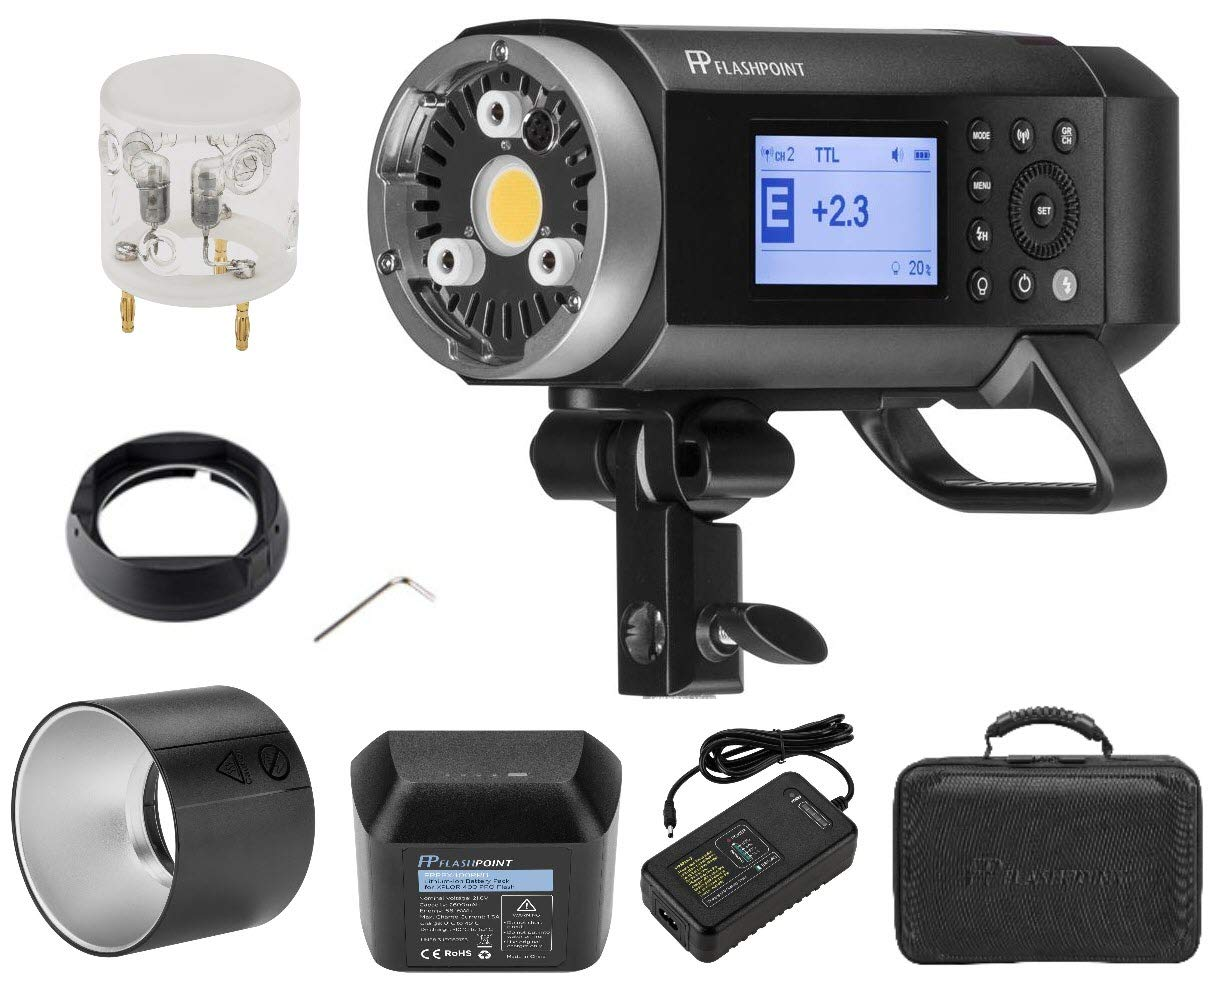 Flashpoint XPLOR 400PRO TTL Battery-Powered Monolight with Built-in R2 2.4GHz Radio Remote System (with Bowens Mount Adapter) - Godox AD400 Pro by Flashpoint (Image #2)